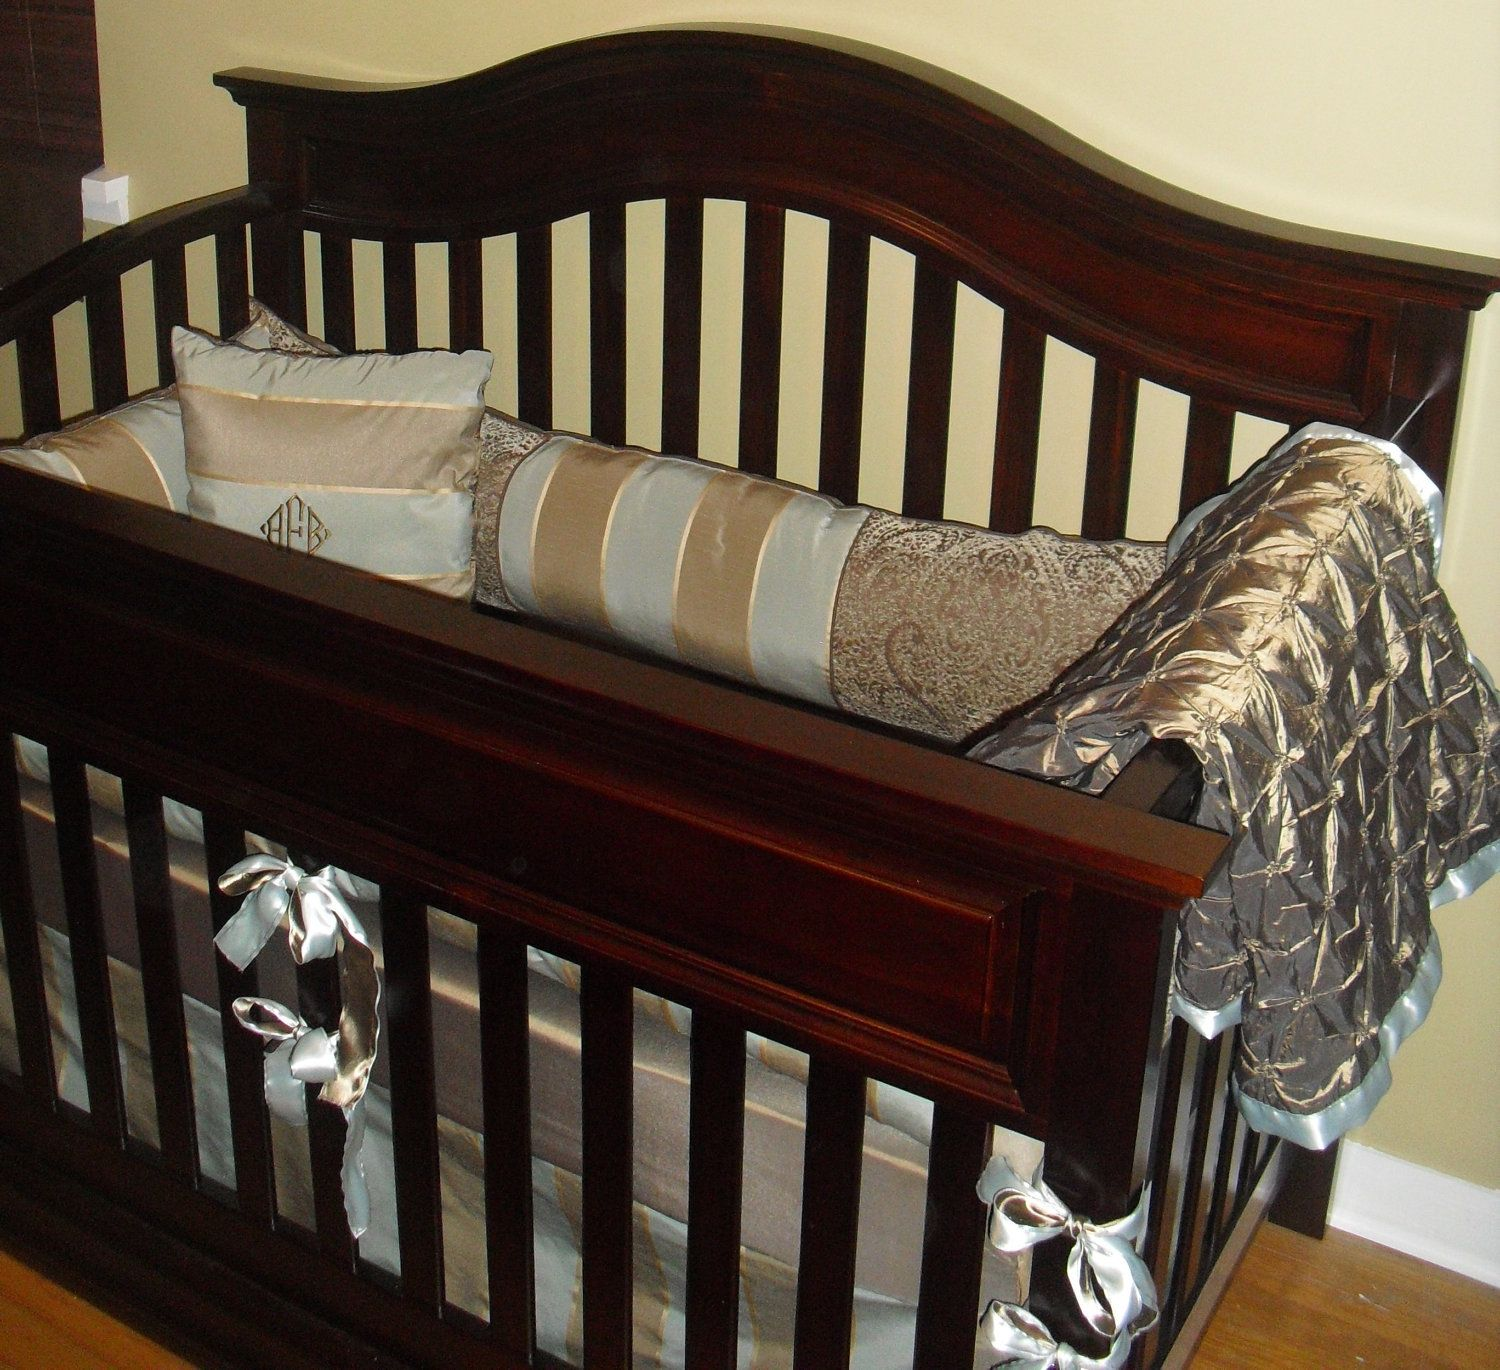 Custom Luxury Baby Boy Crib Bedding 399 00 Via Etsy